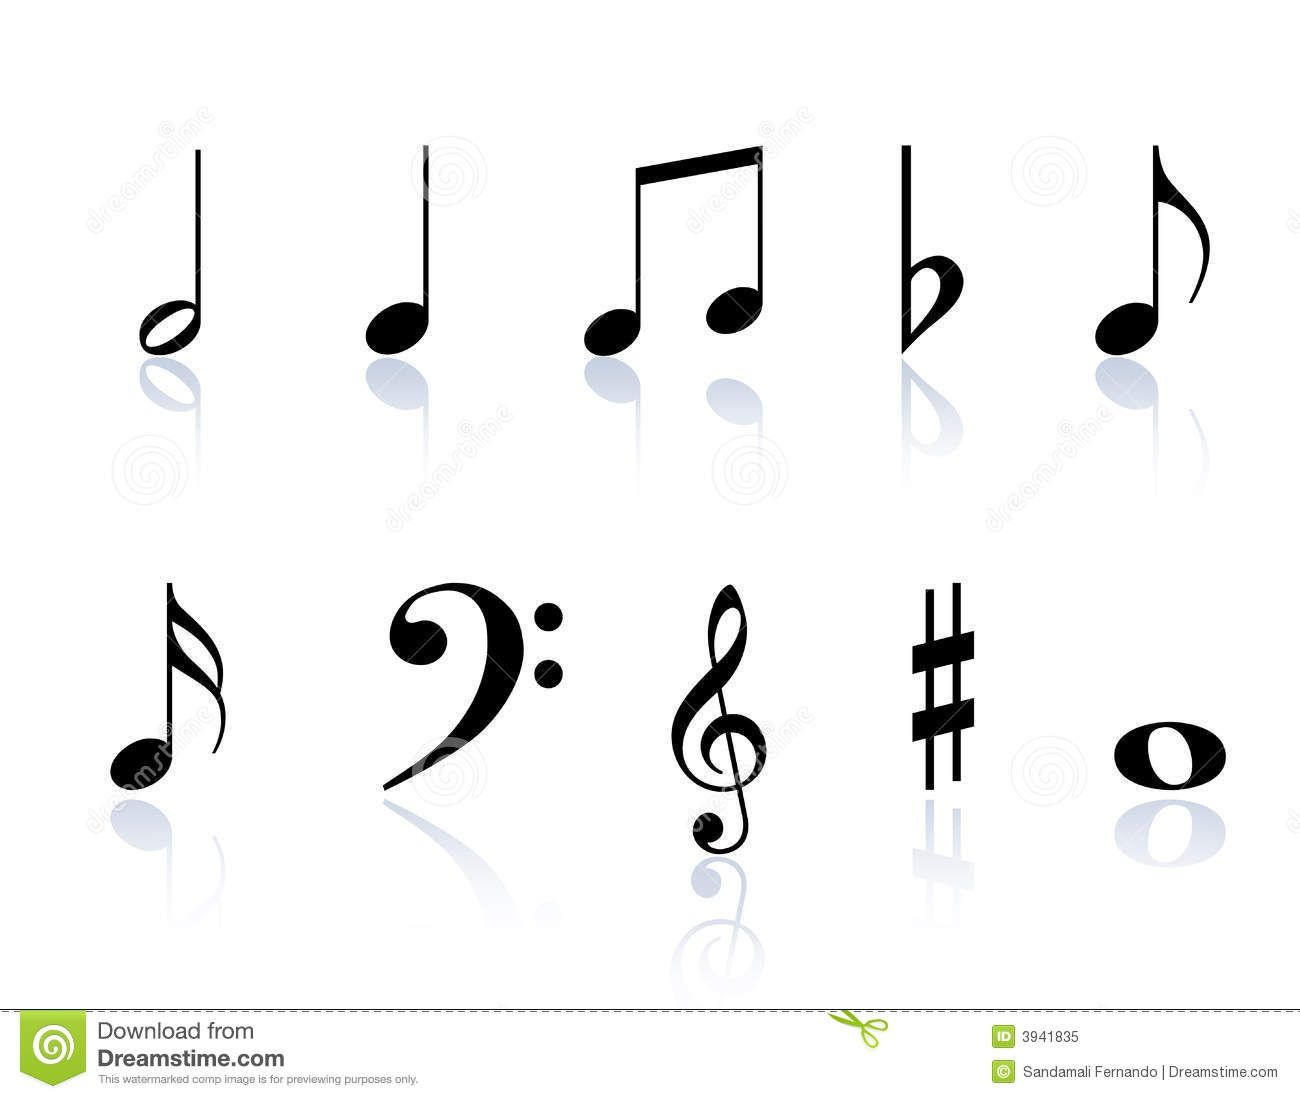 Music notes symbols something interesting music symbols music notes symbols something interesting biocorpaavc Image collections